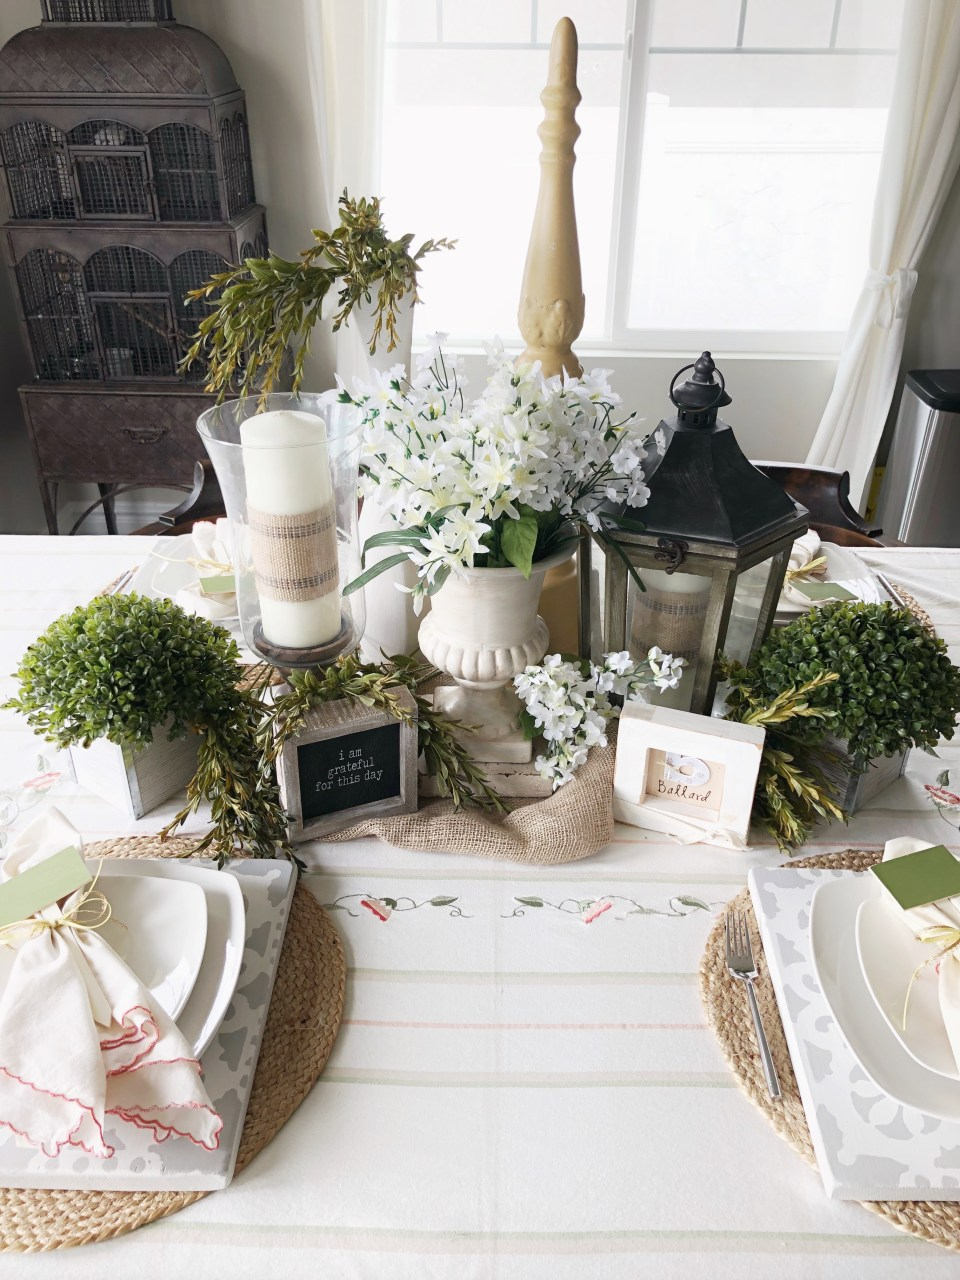 Spring Tablescape Ideas for Easter Season